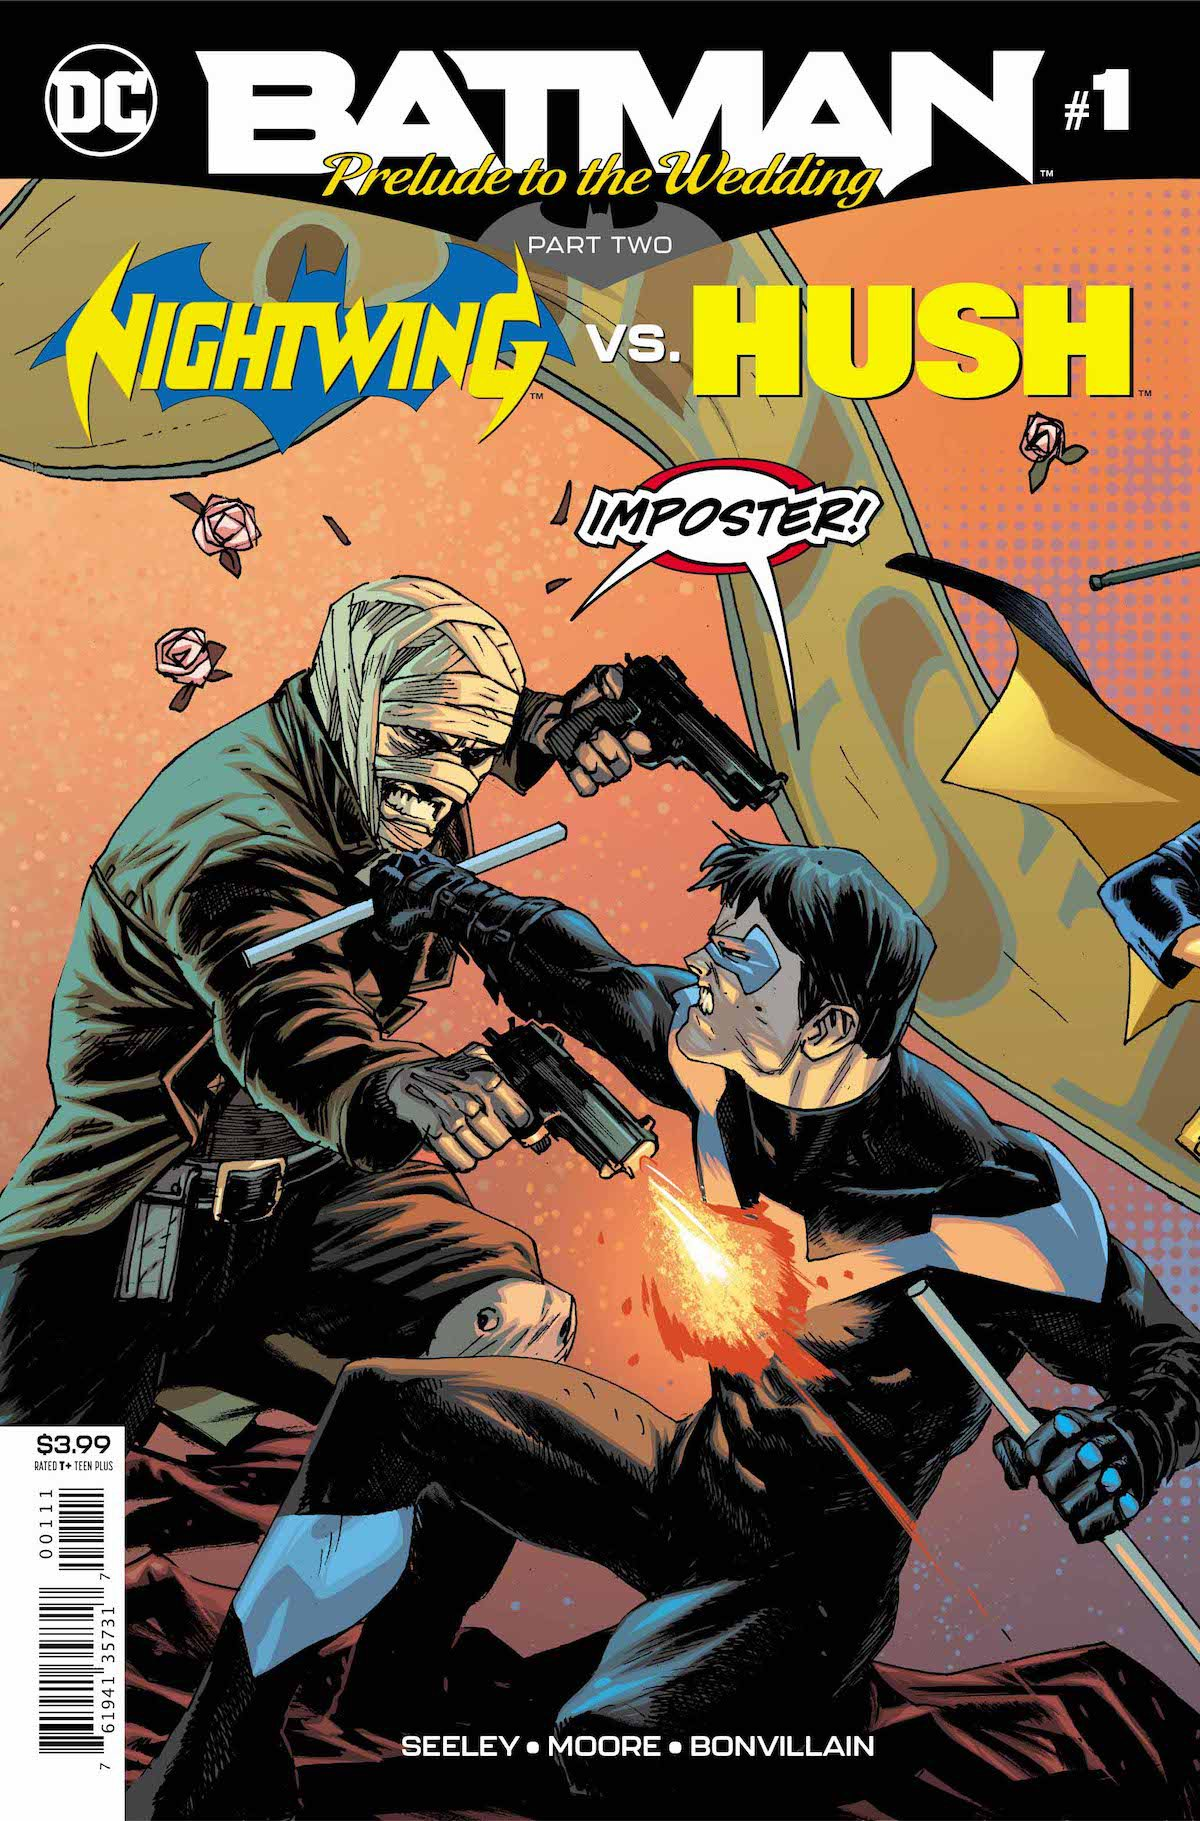 Batman Prelude to the Wedding Nightwing vs. Hush Special #1 cover